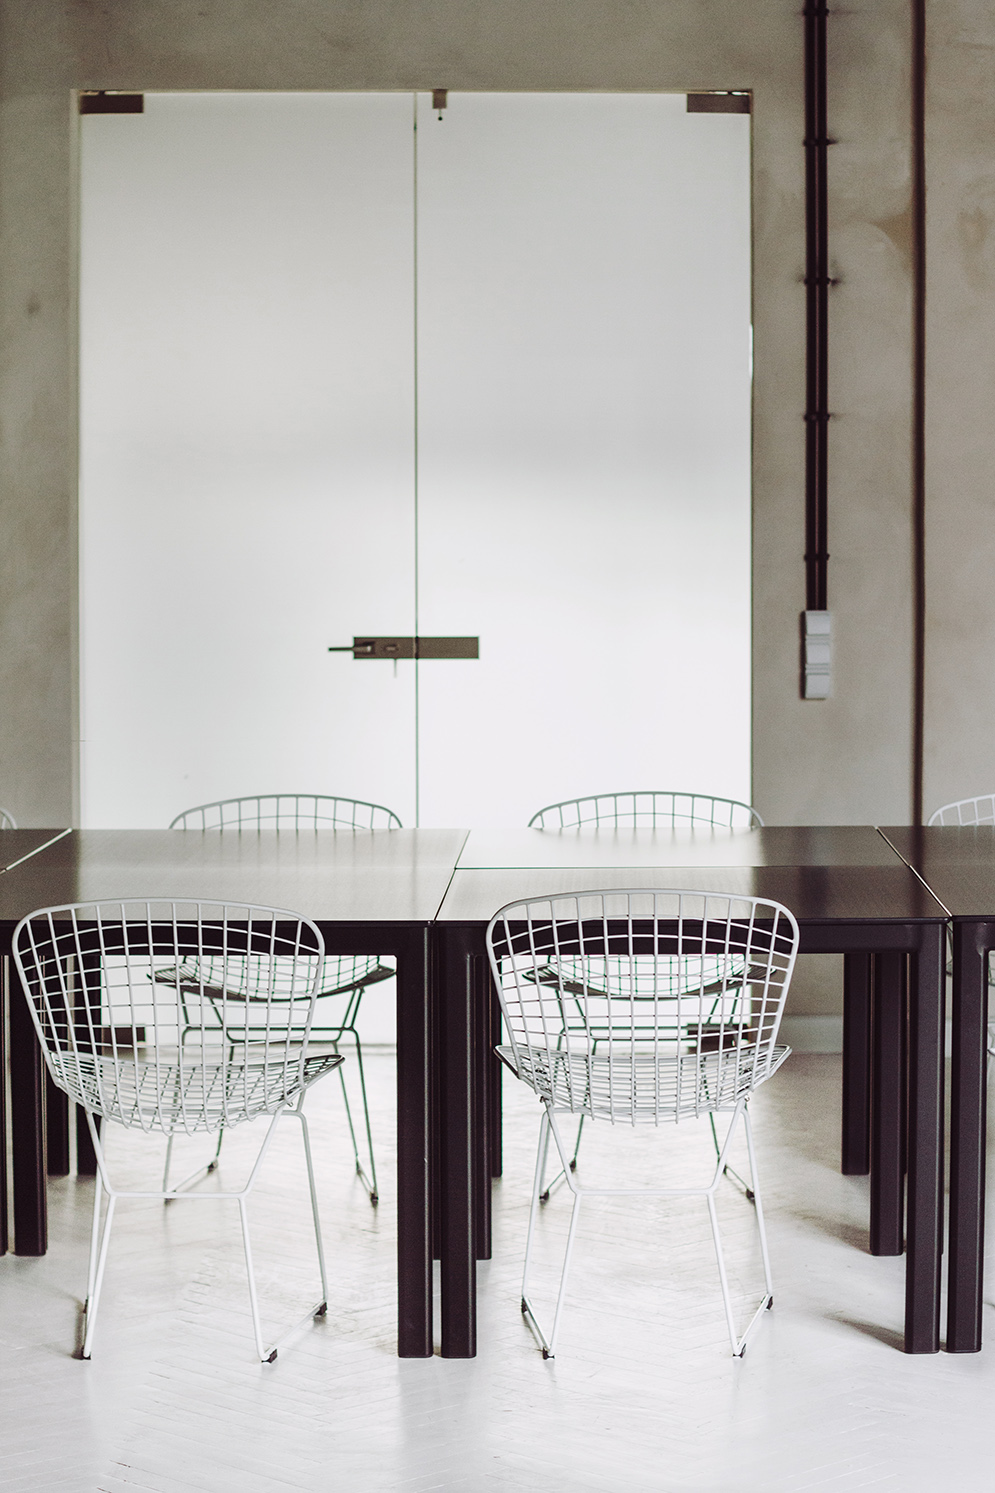 White Metal Chairs - Industrial style apartment with meeting room